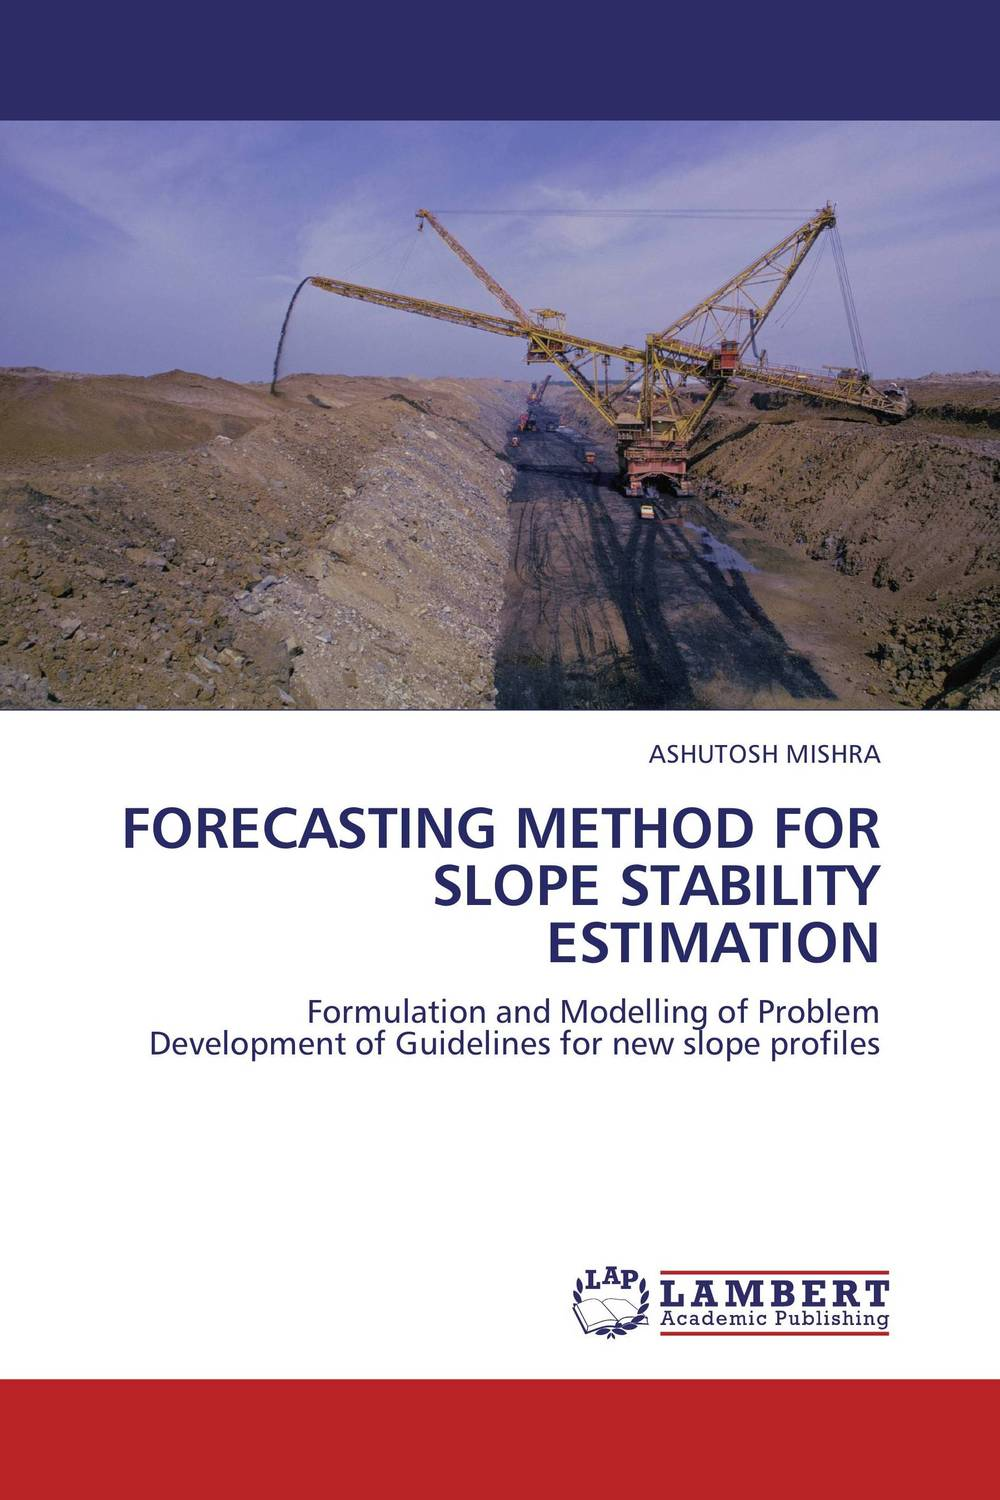 FORECASTING METHOD FOR SLOPE STABILITY ESTIMATION stem bromelain in silico analysis for stability and modification